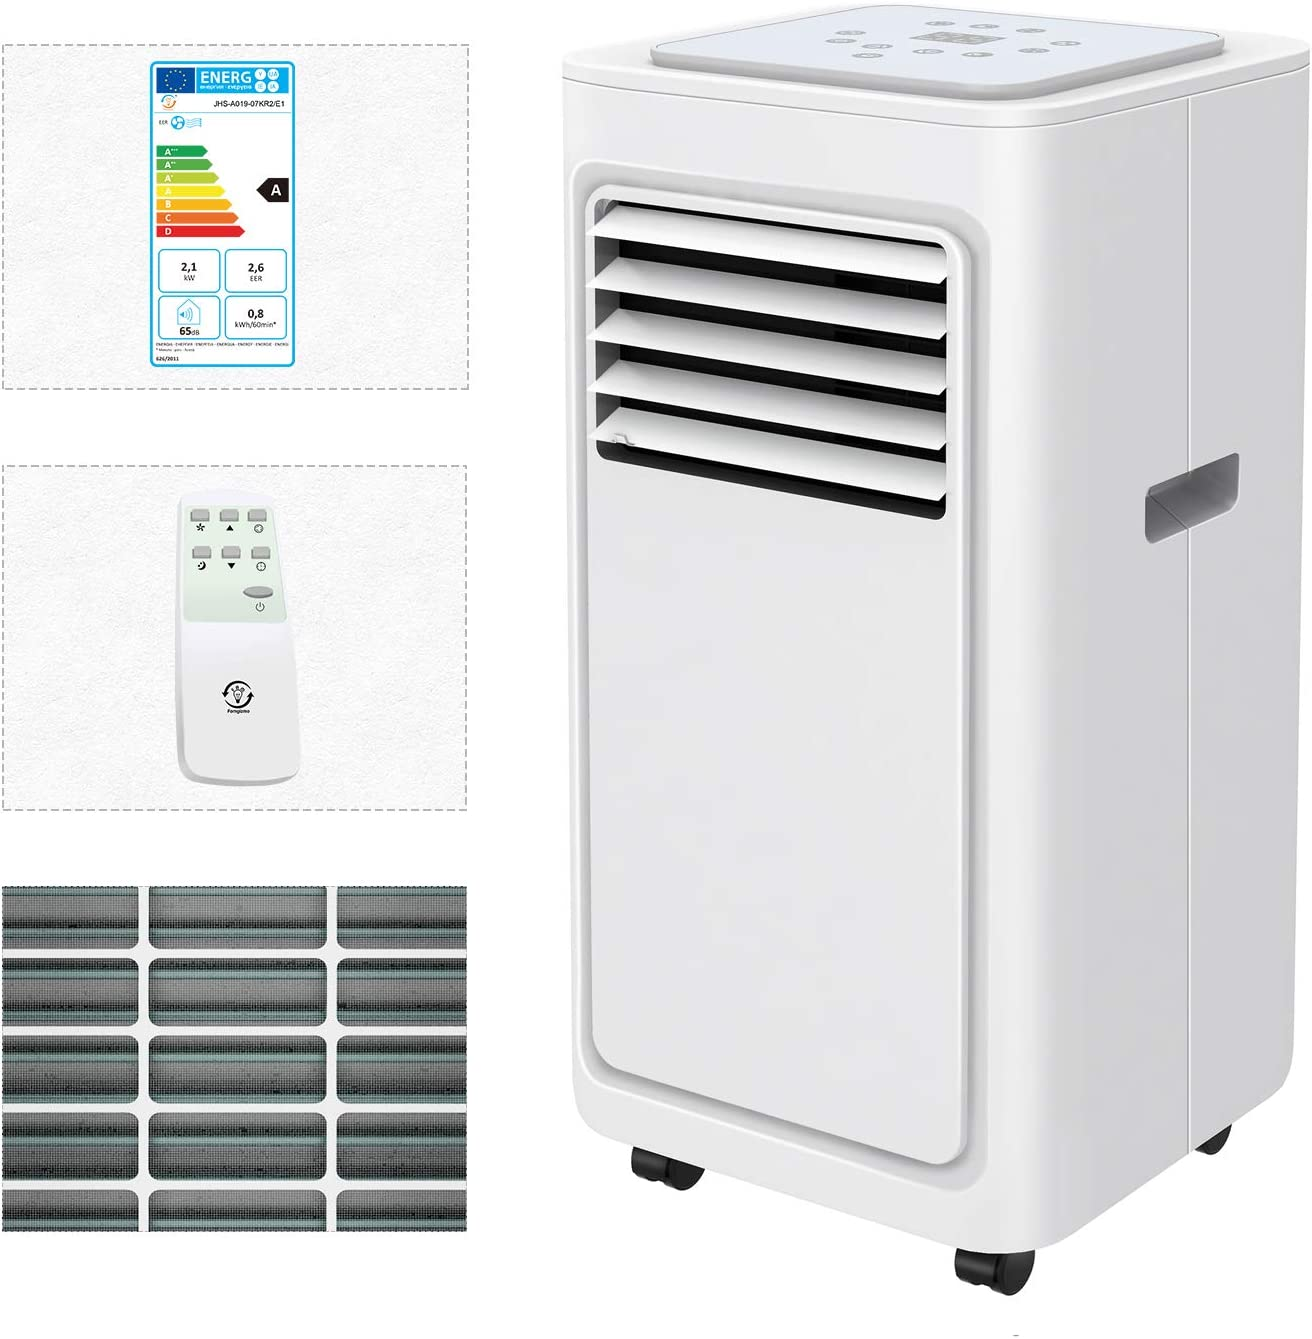 Energy Class A Remote Control Famgizmo Portable Air Conditioner Unit Dehumidifier LED Panel Display 9000 BTU 4in1 Air Conditioning with Air Cooler R290 24H Timer Fan /& Sleeping Mode